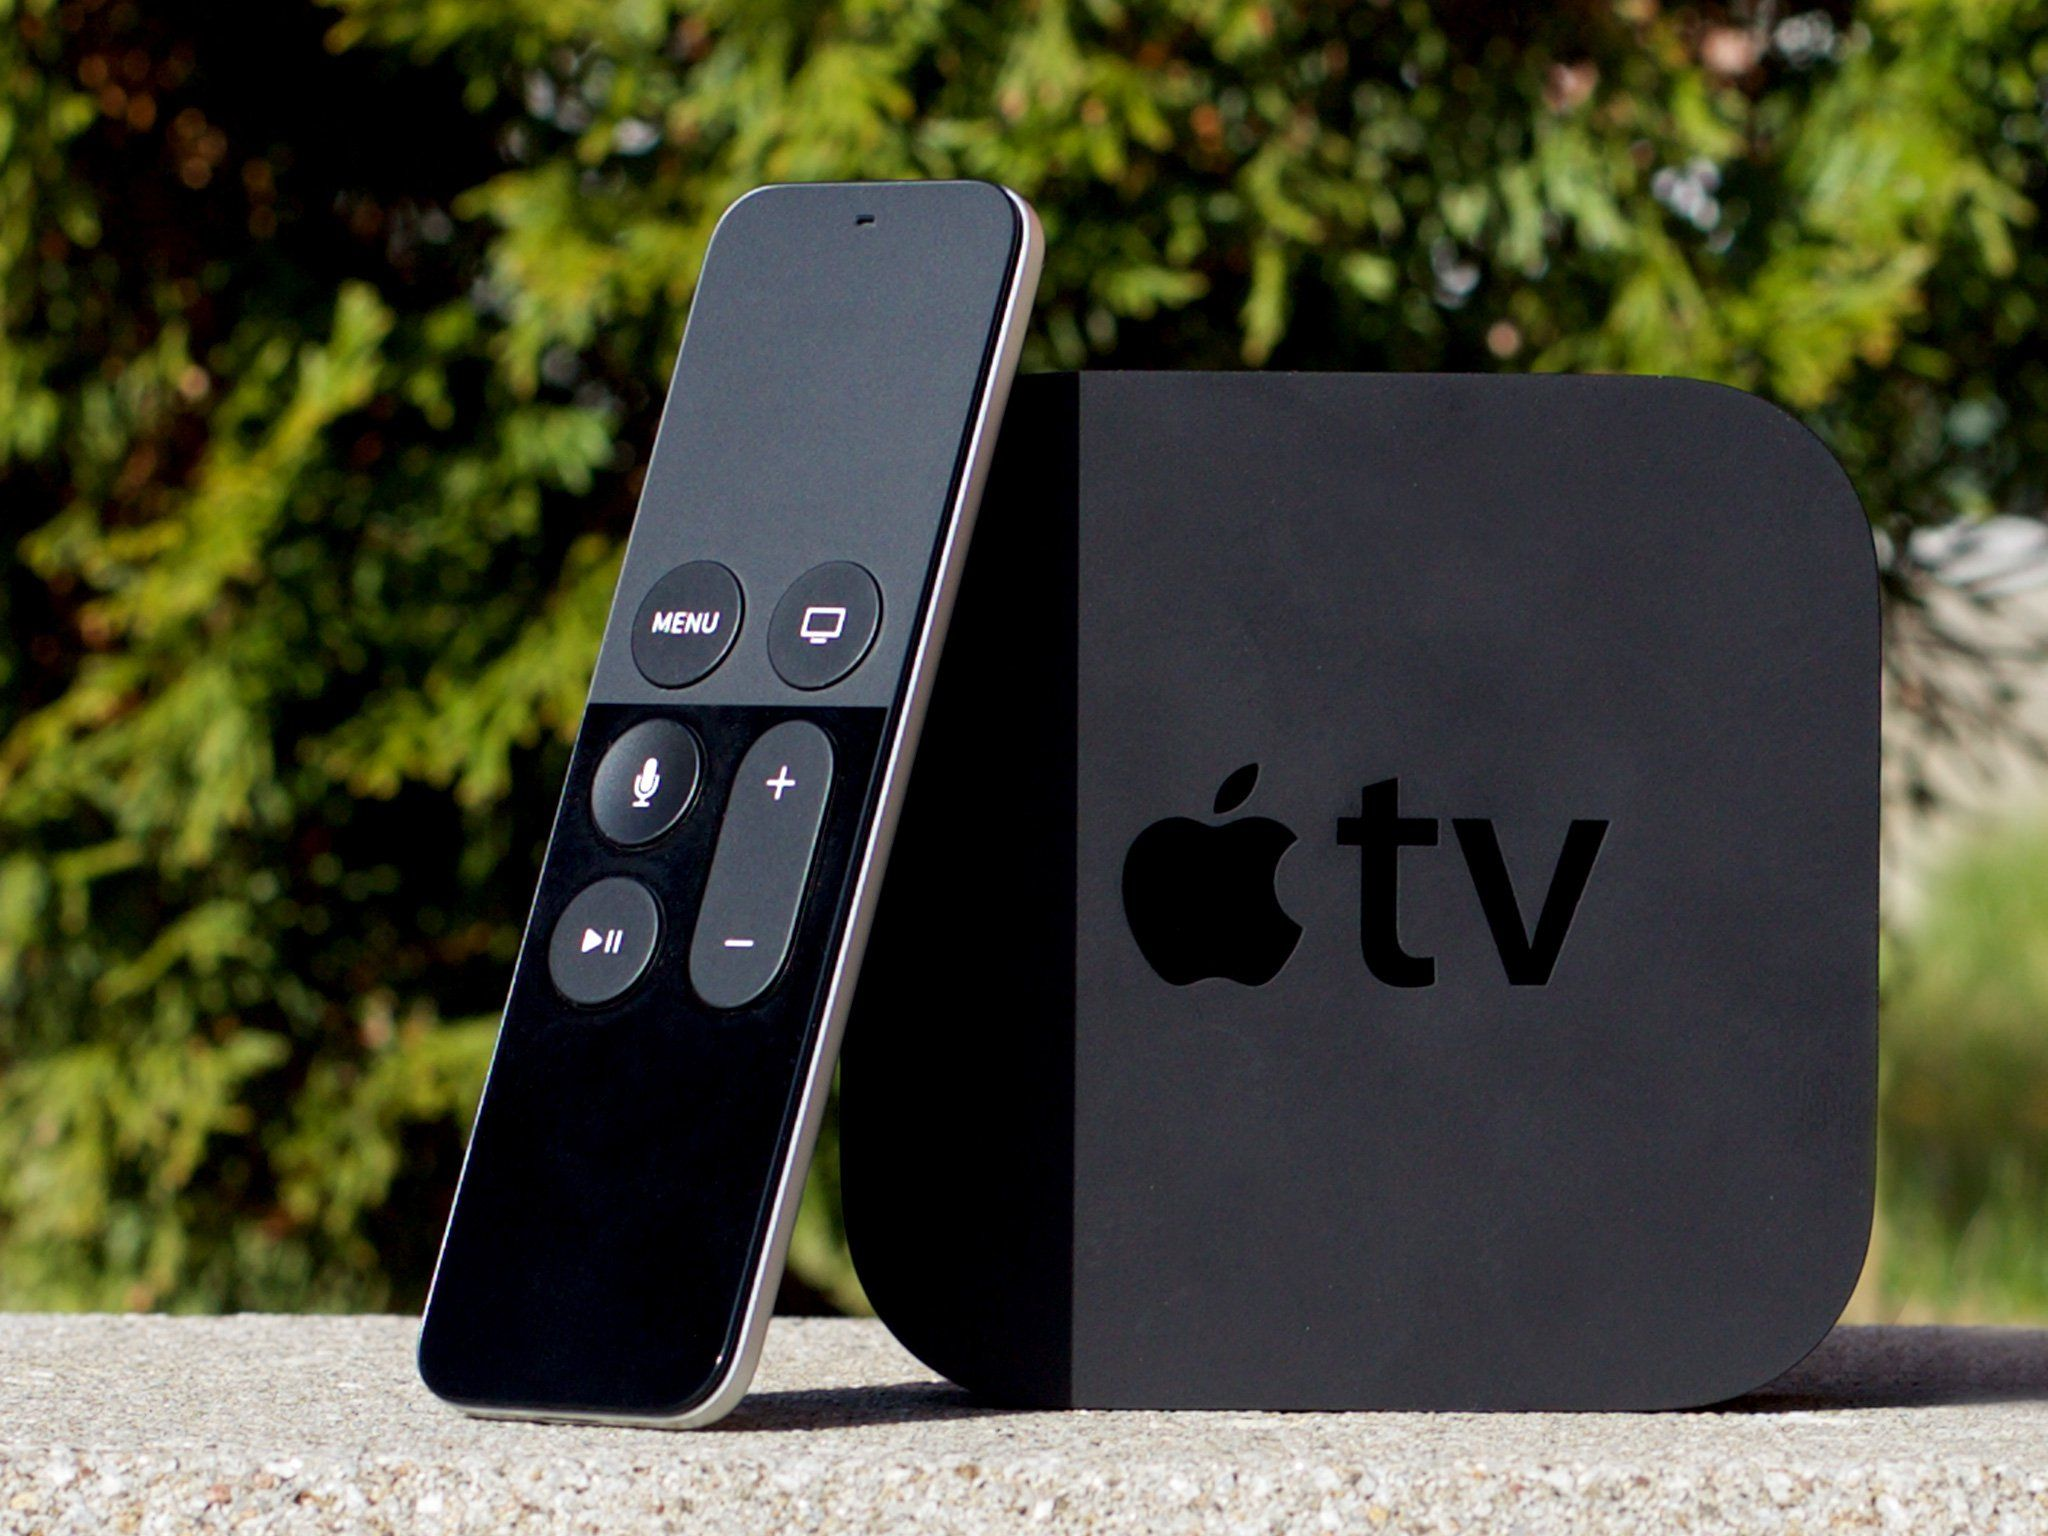 These are the Apple TV apps that you should get right now